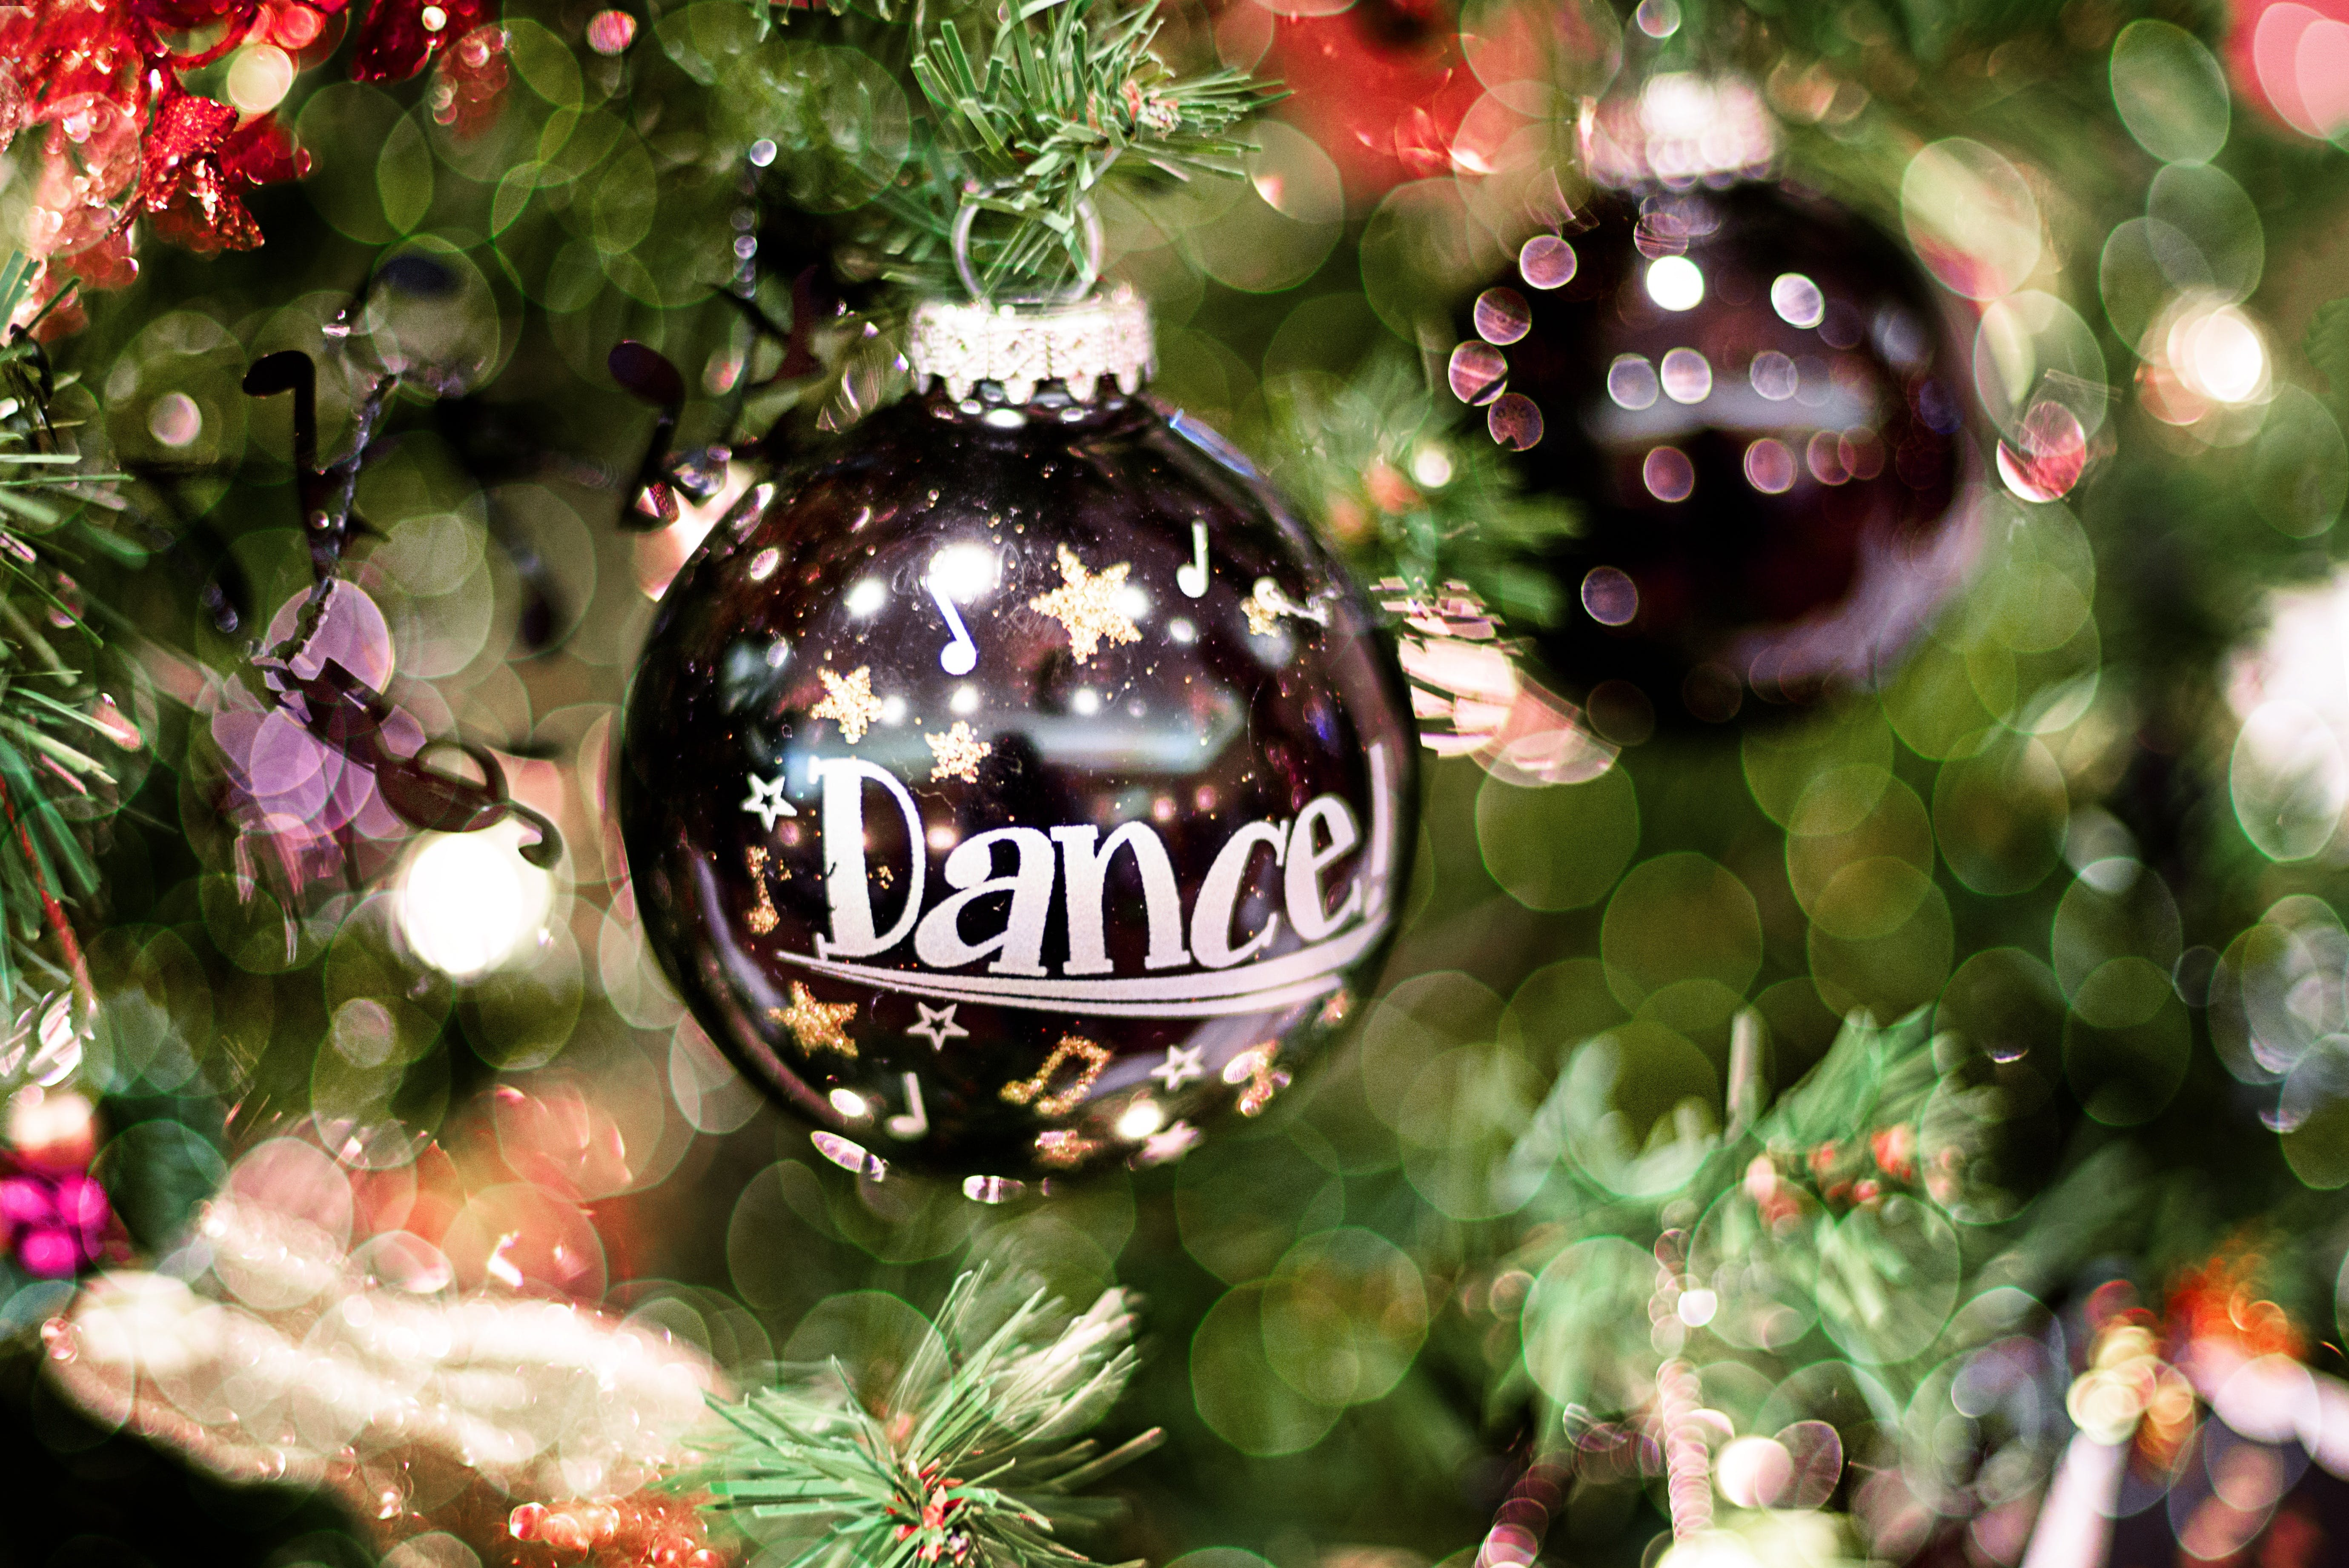 Selective Focus Photography of Black and White Dance!-printed Christmas Bauble